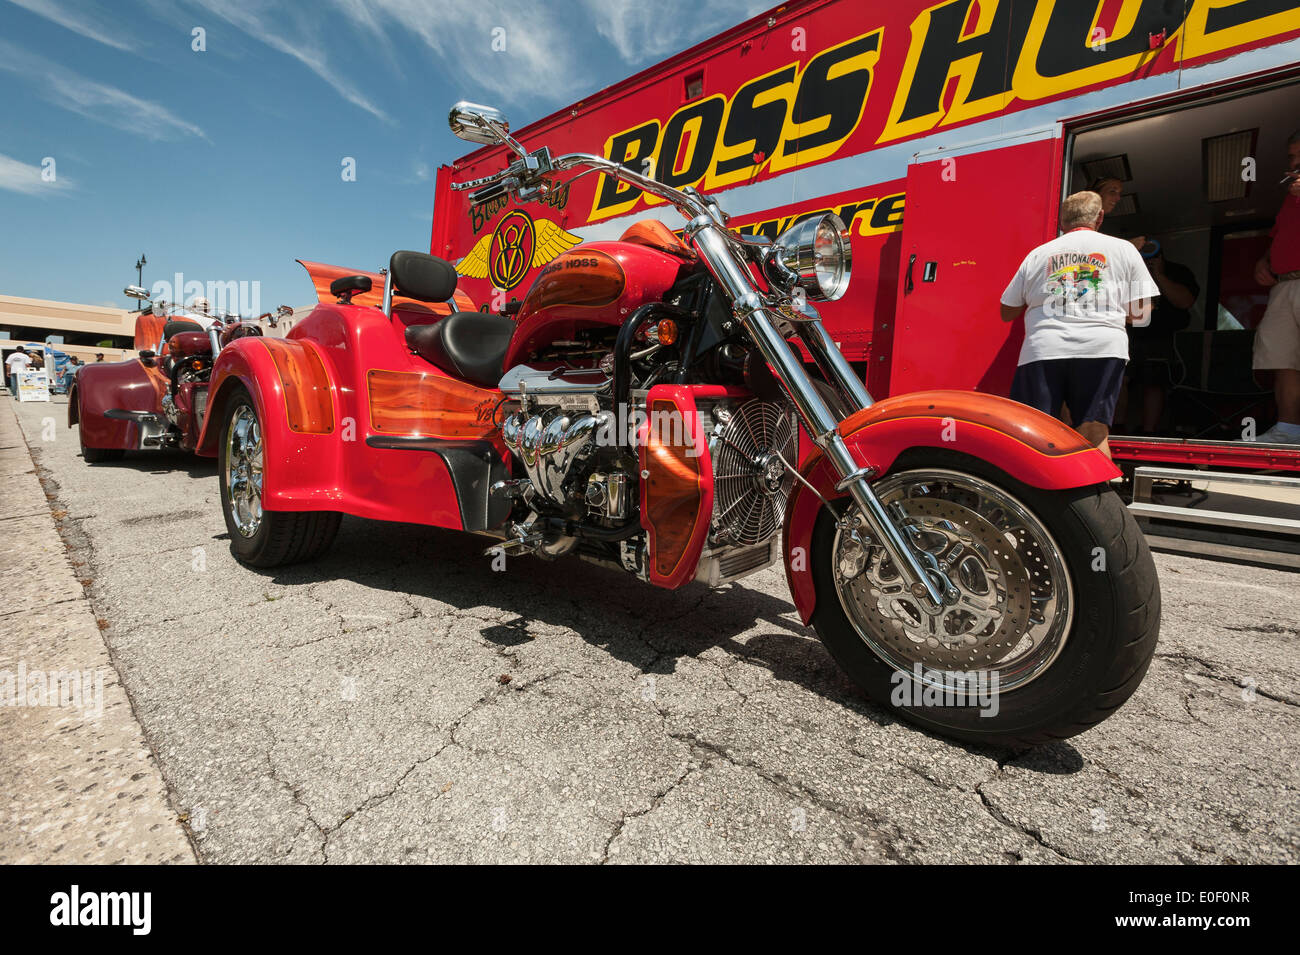 Power Trailer Stock Photos Images Alamy Boss Hoss Trike Wiring Diagram Cycles With V8 Being Shown At The Leesburg Florida Usa Bike Week